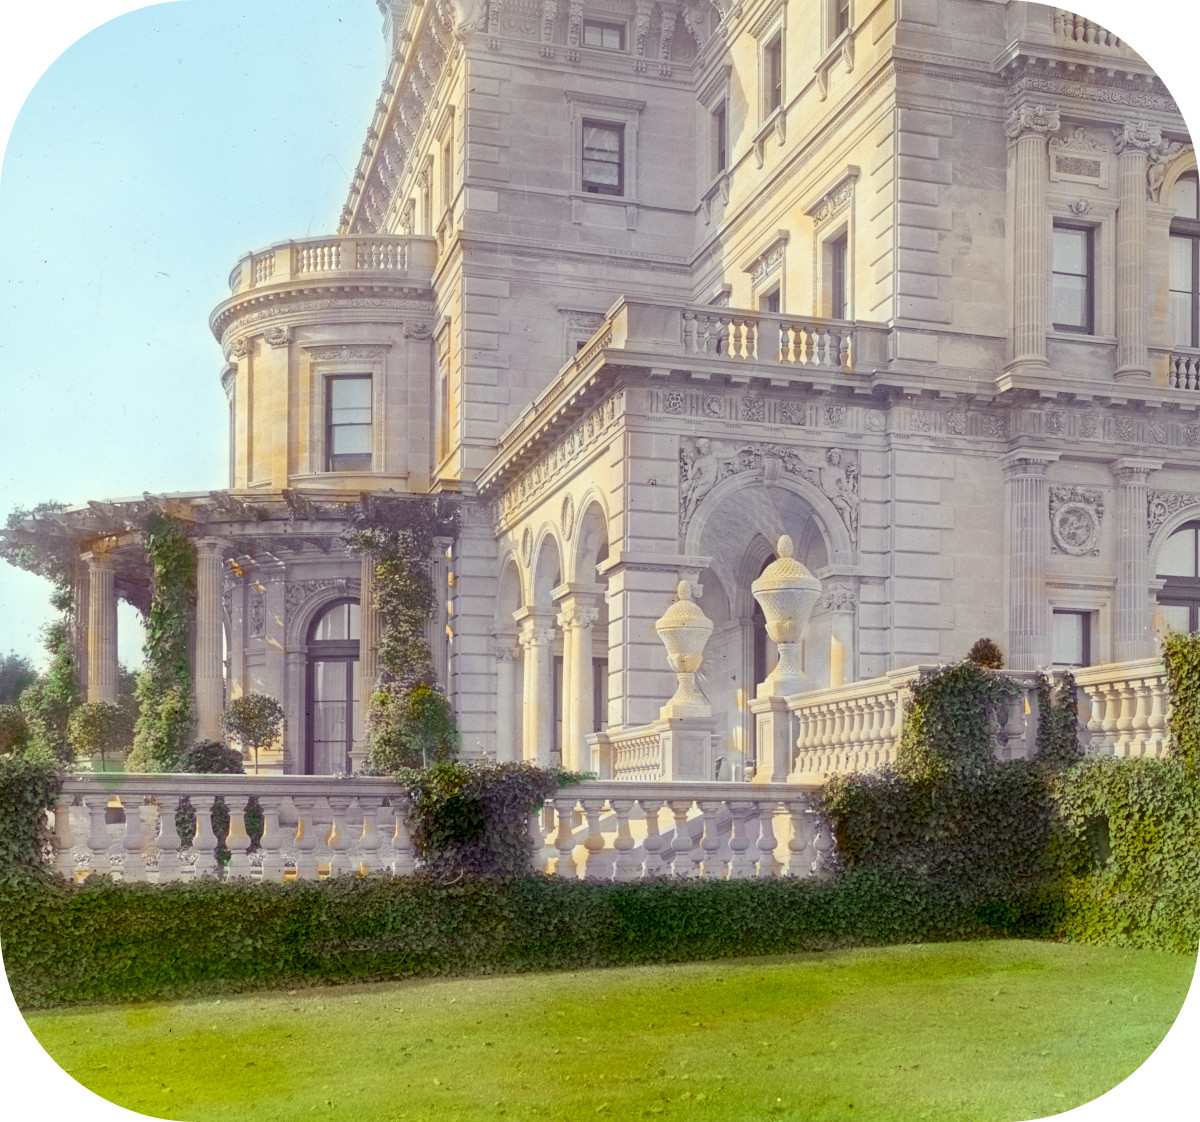 'The Breakers,' Cornelius Vanderbilt II house, 44 Ochre Point Avenue, Newport, Rhode Island. View of terrace and loggia